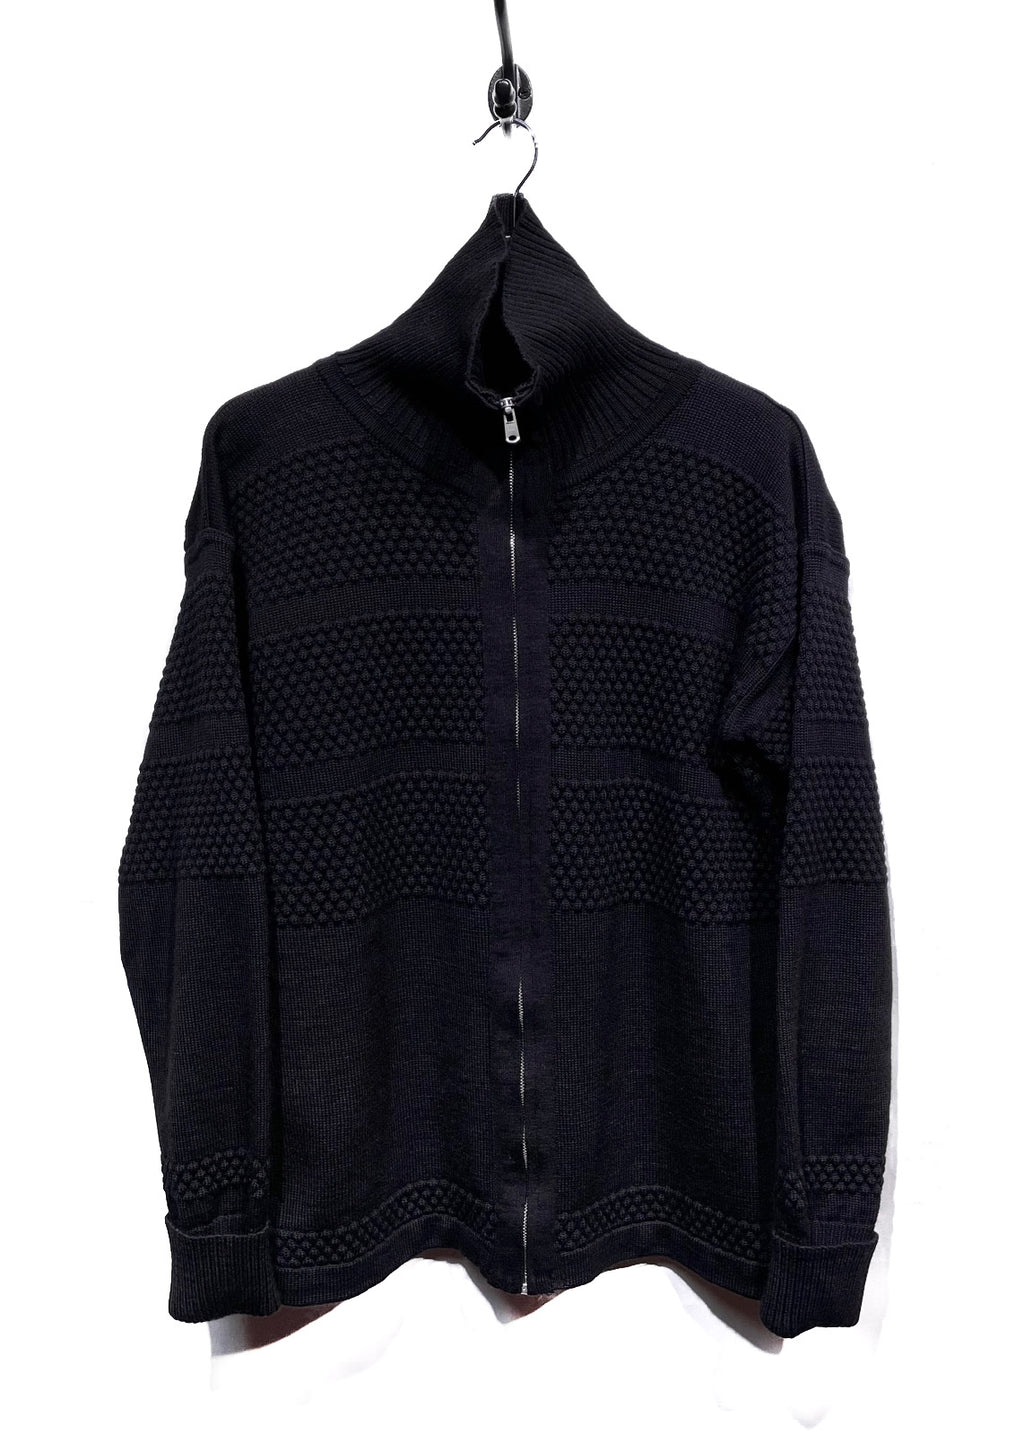 S.N.S. Black Wool Zip-up Knit Sweater